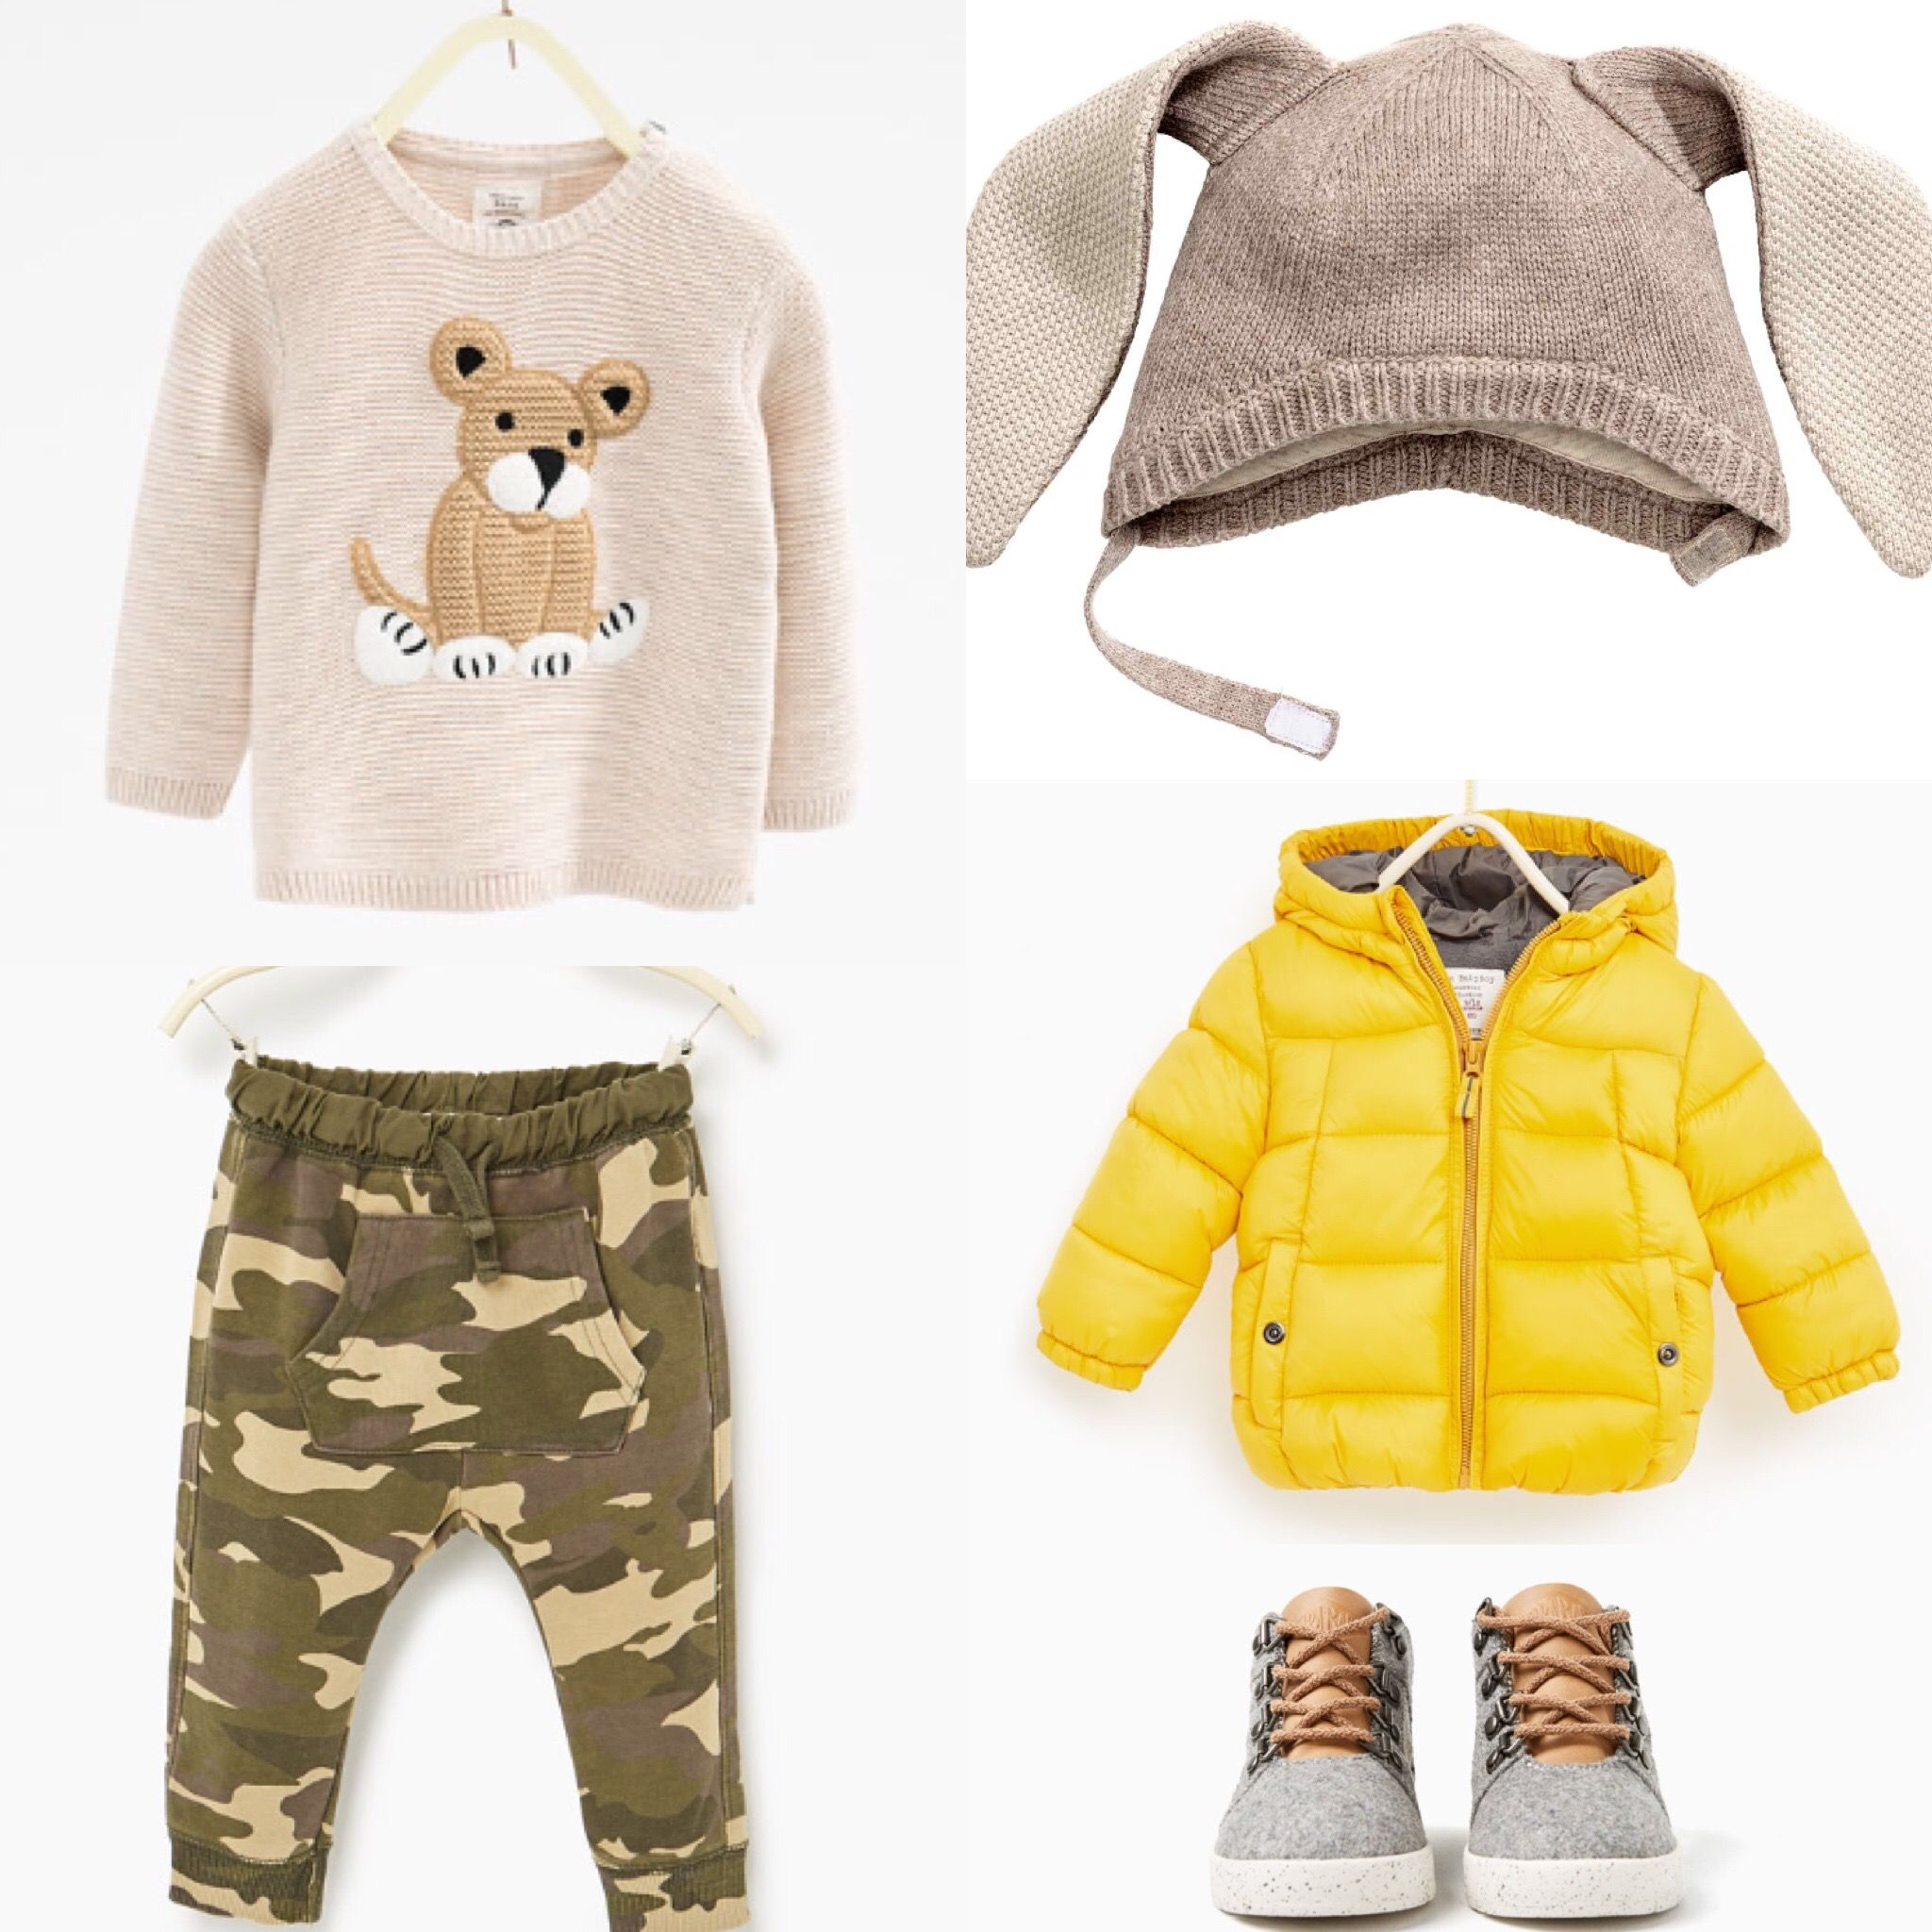 Baby boy fall outfit H&M hat Zara sweater trousers jacket and